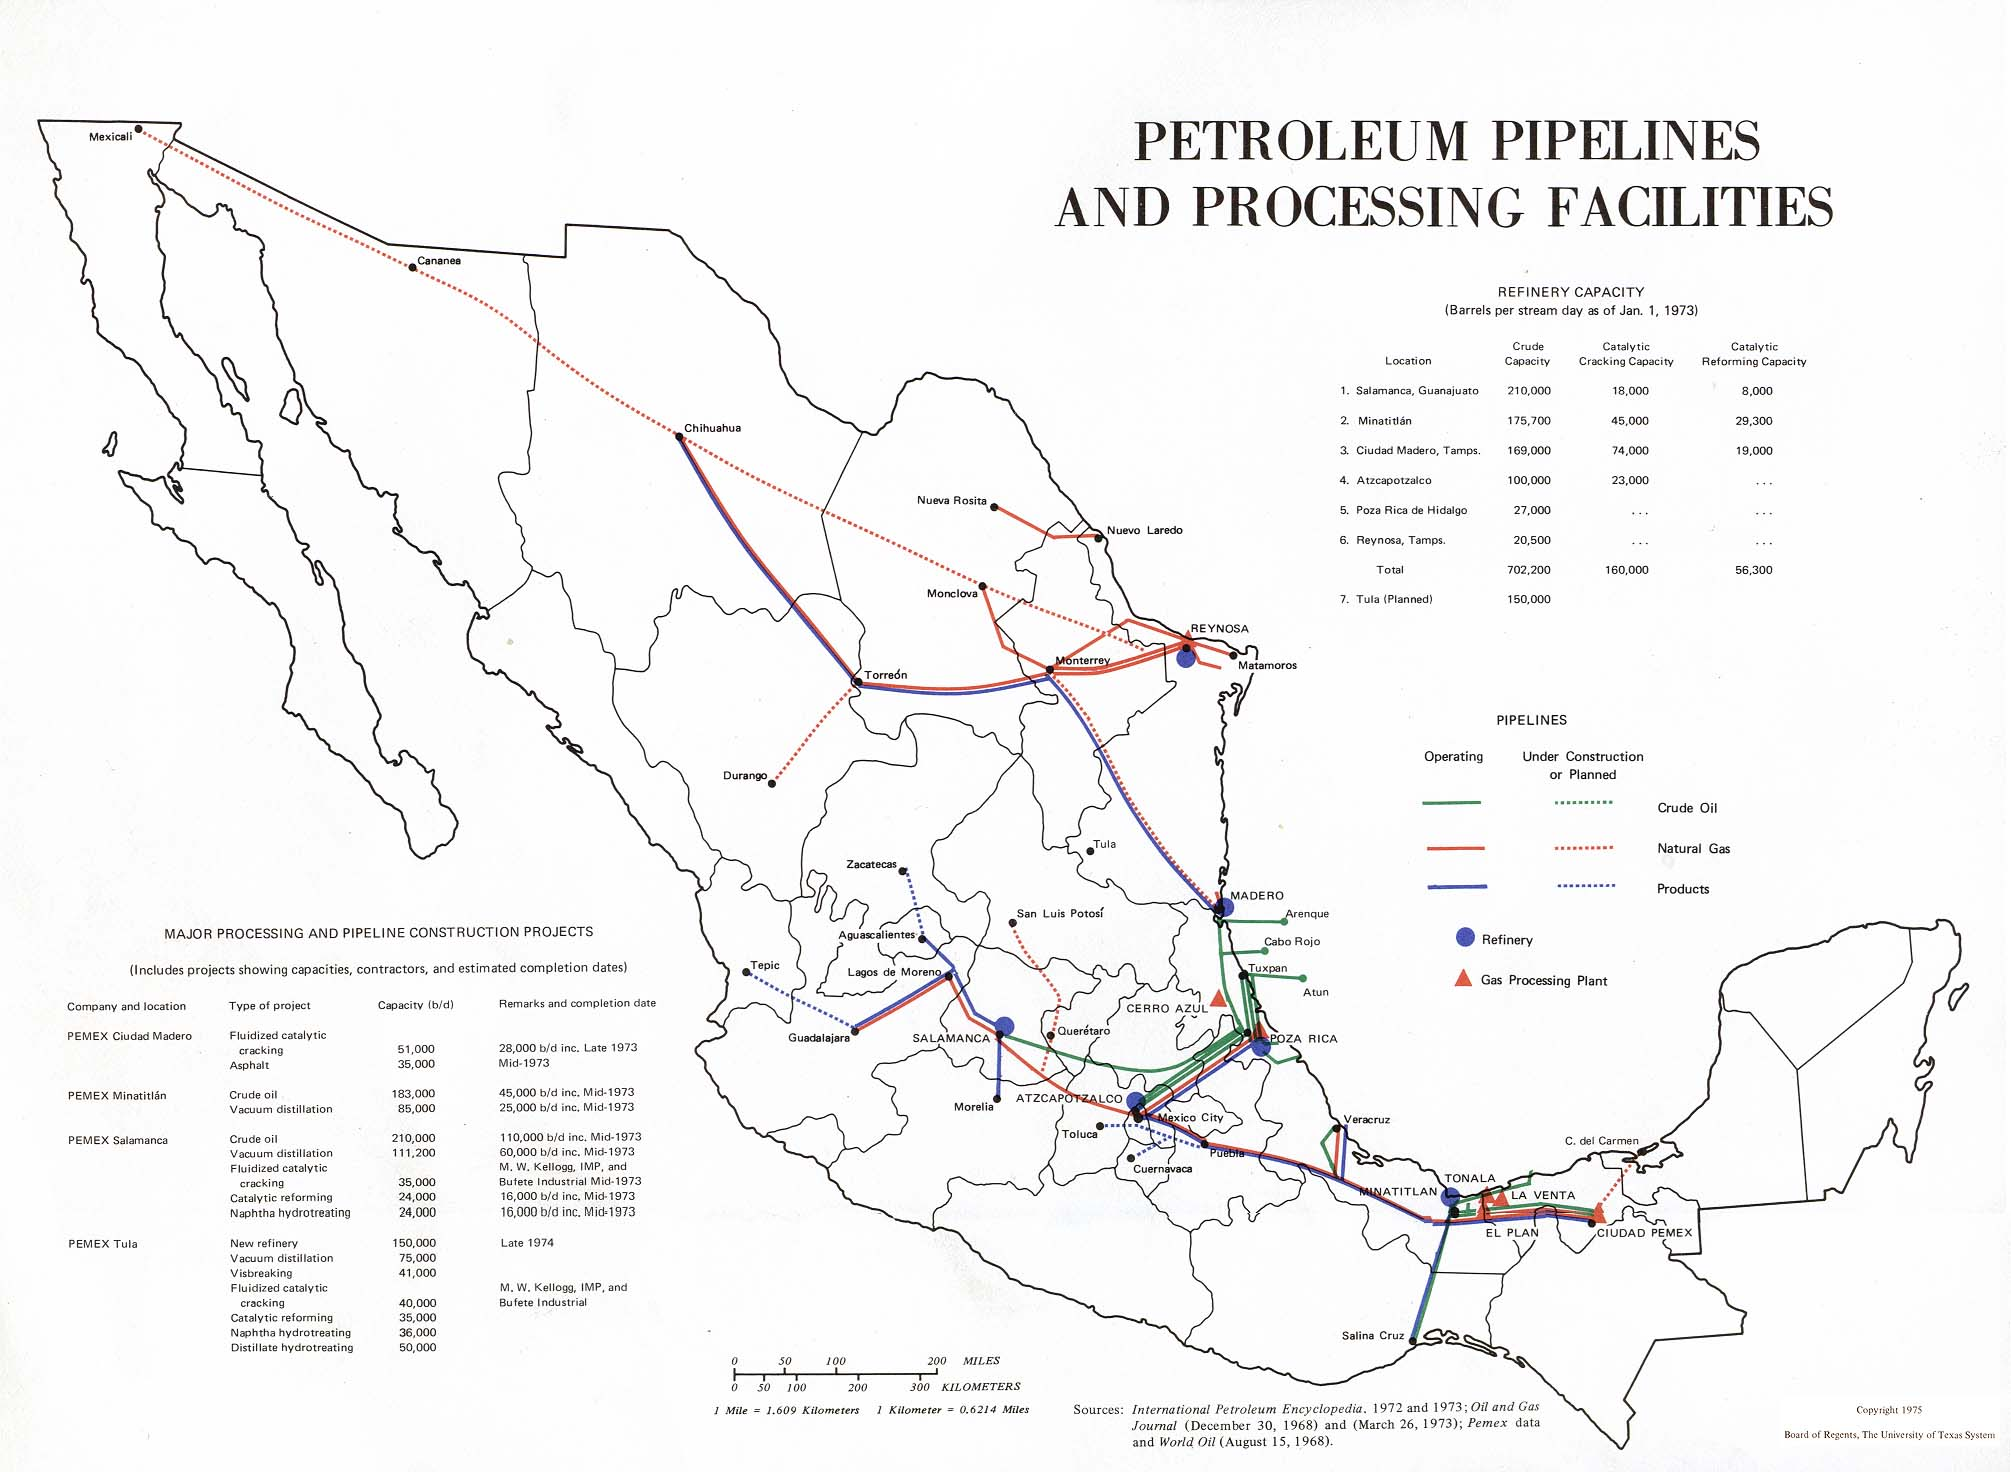 Petroleum Pipelines and Processing Facilities, Mexico 1975